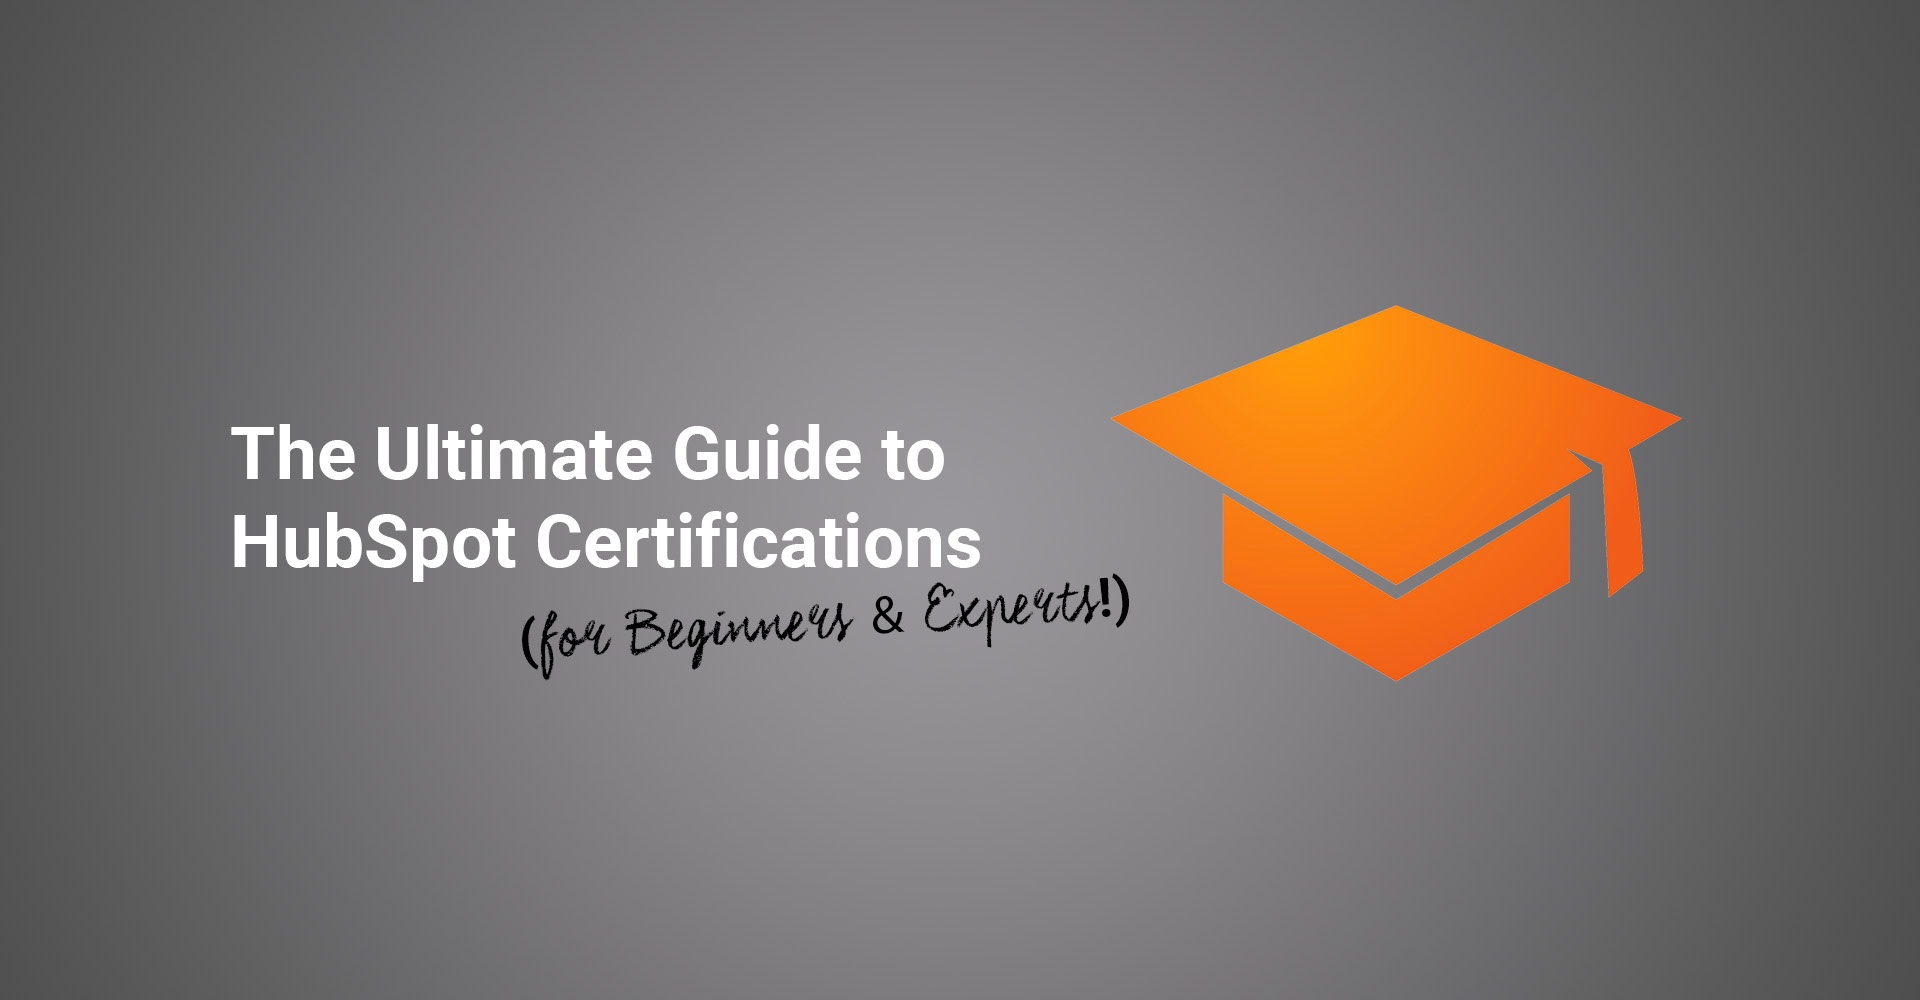 Ultimate guide to hubspot certifications for beginners experts the ultimate guide to hubspot certifications for beginners experts xflitez Choice Image